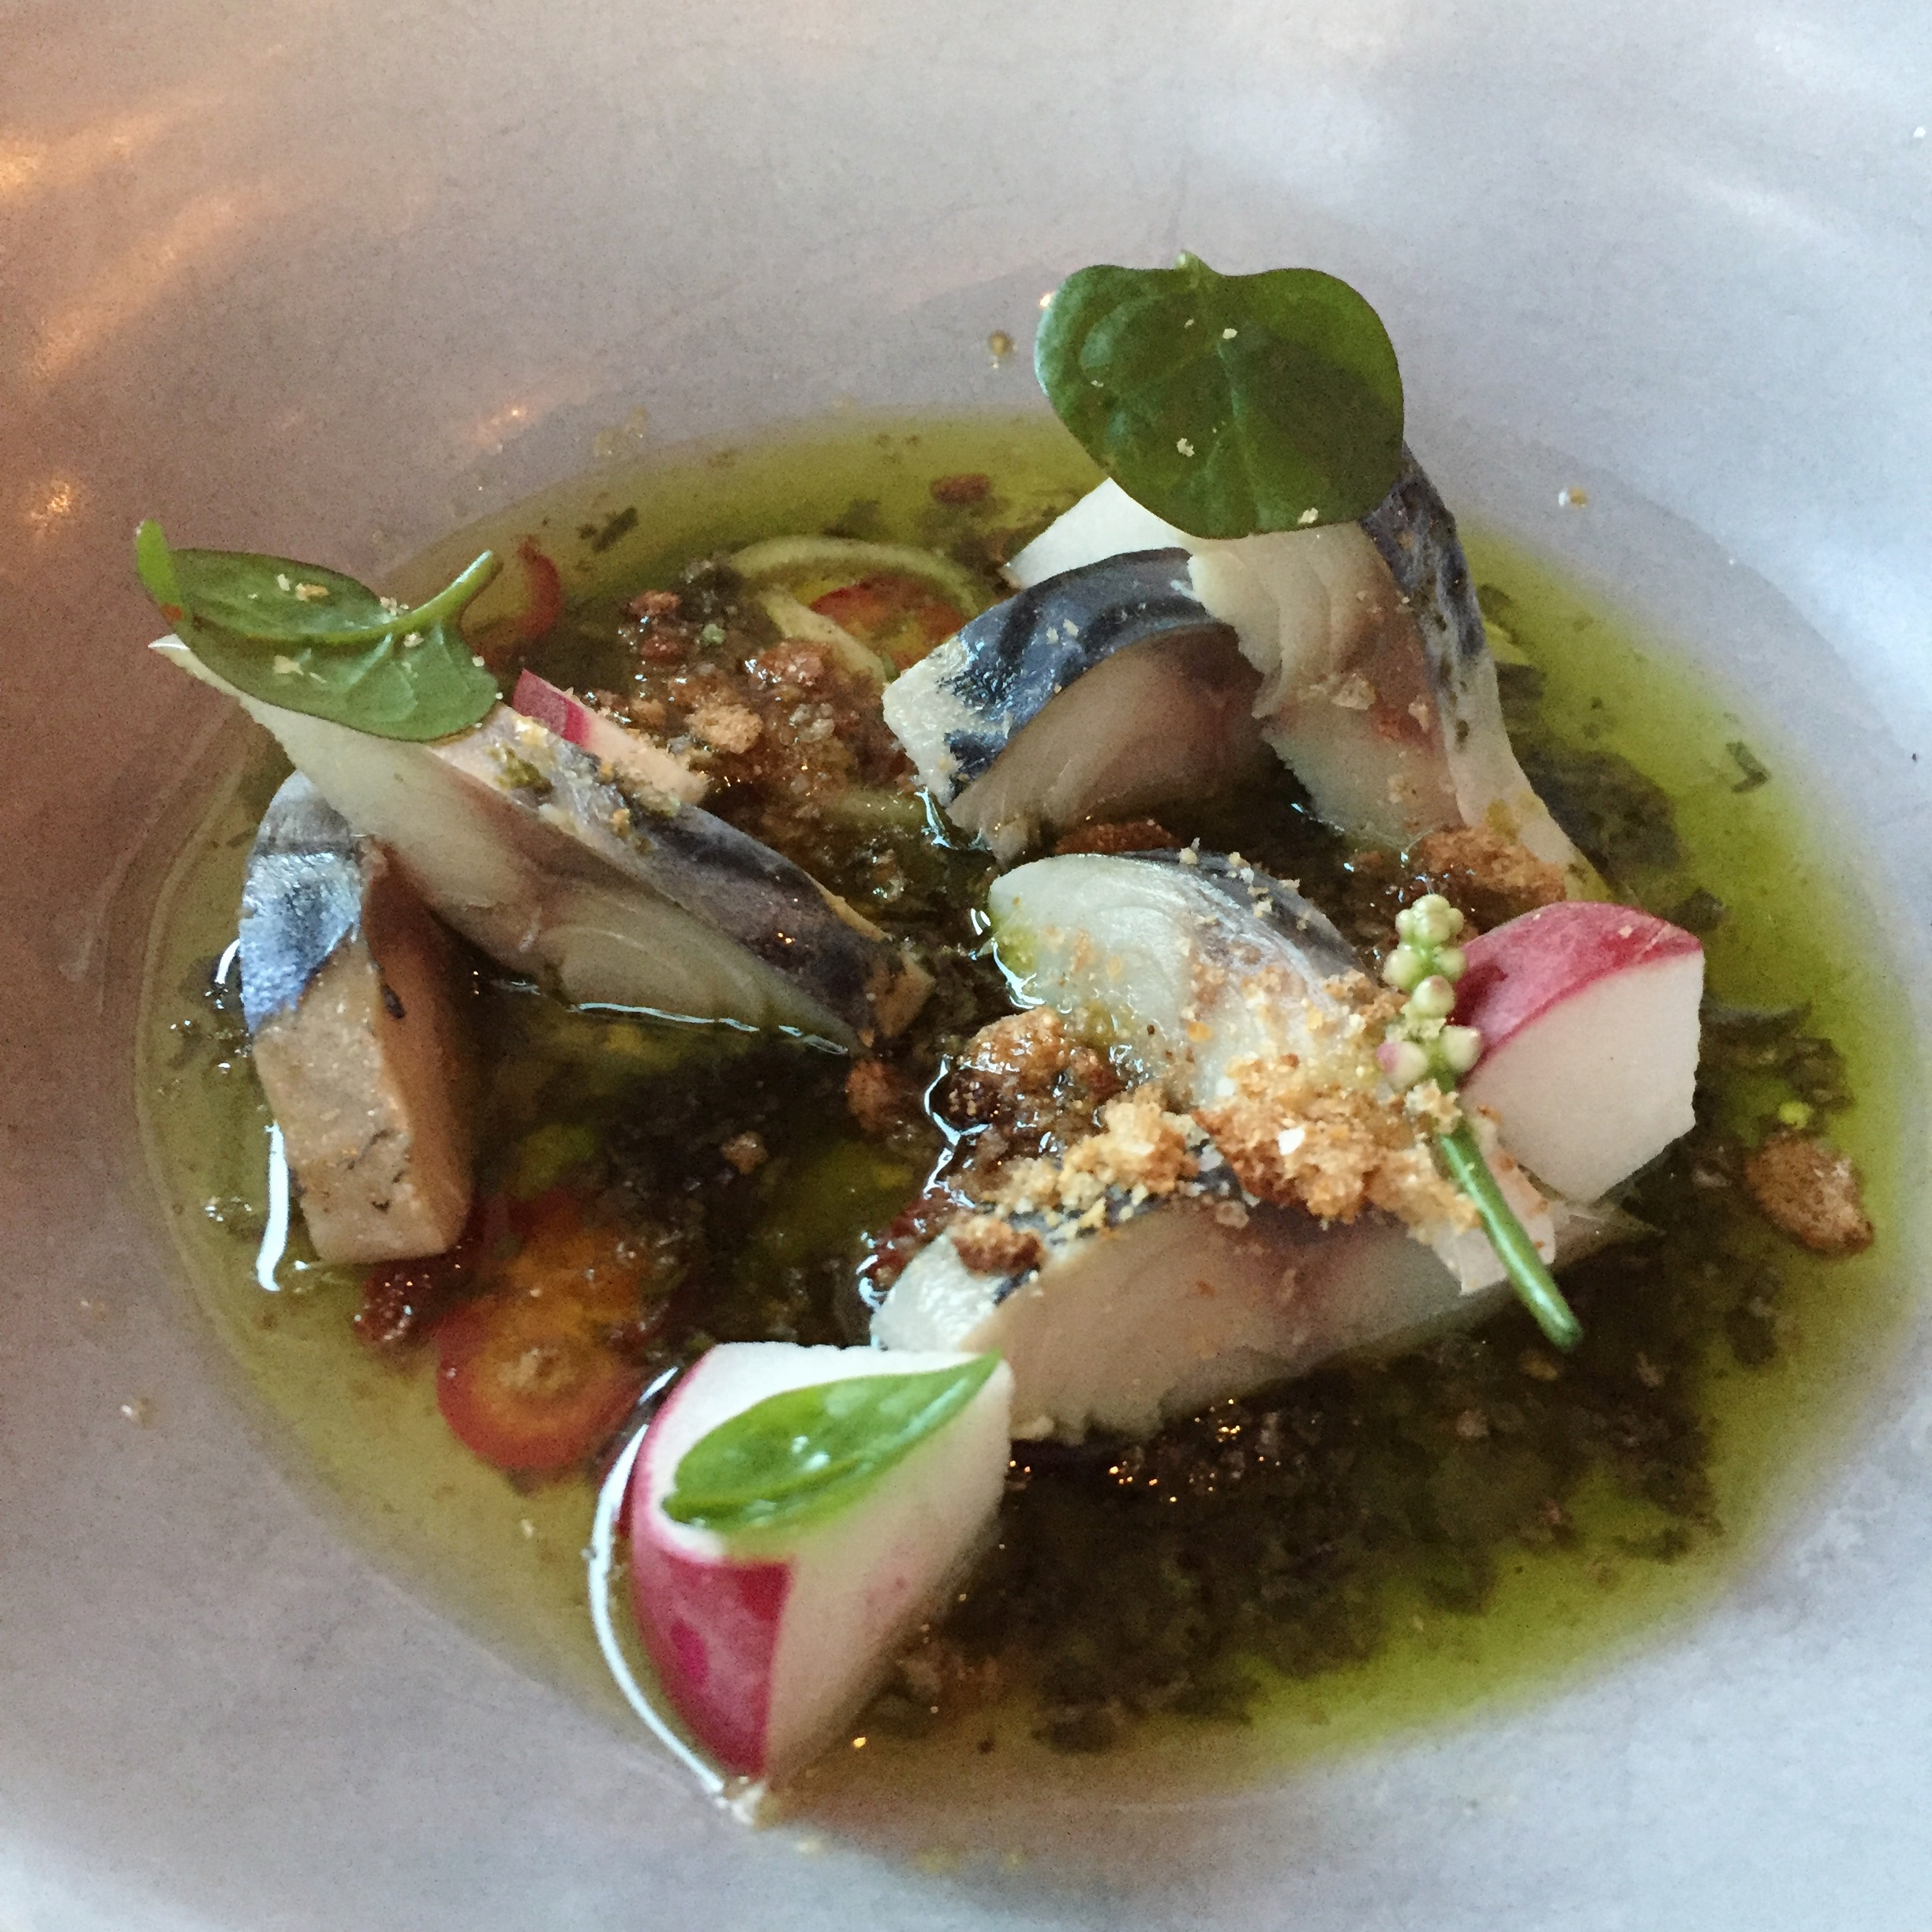 Cured Mackerel, Charred Fennel Broth, Basil, Pecans, Bread Crumbs - $11